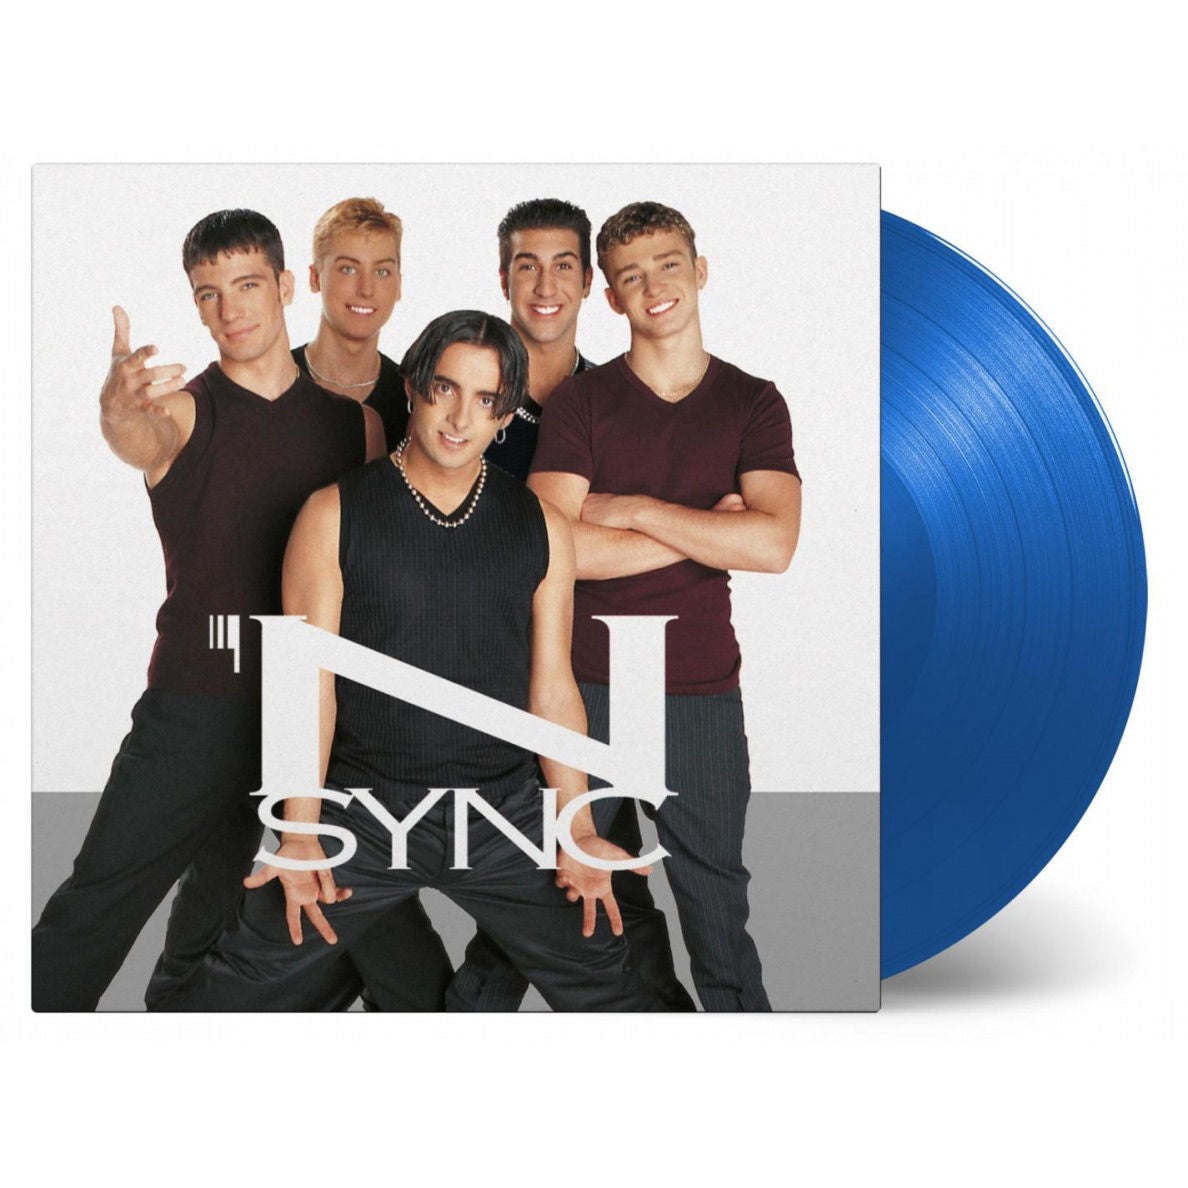 NEW - Nsync, Nsync Blue Vinyl Limited Edition Vinyl